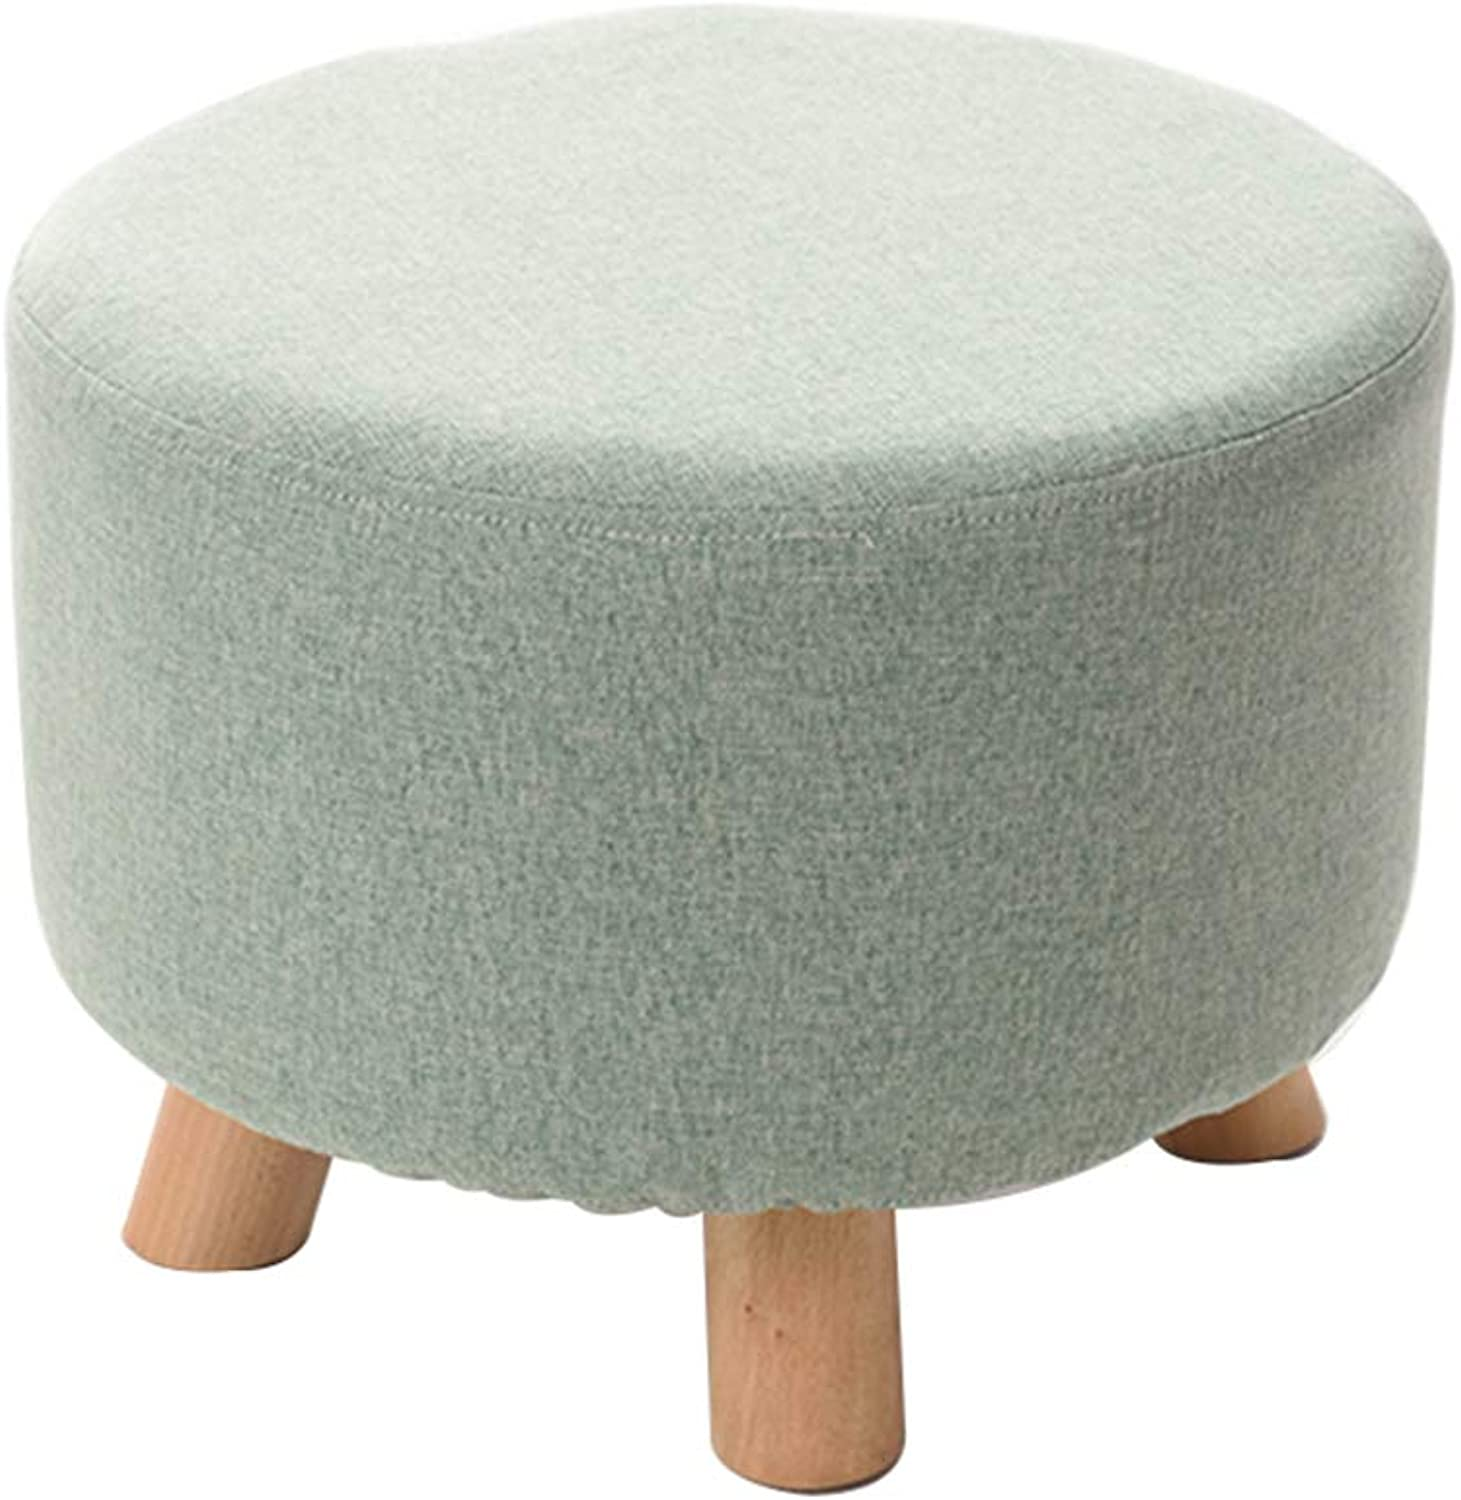 Footstool,Anti-Slip Vanity Stool,Household Dinning Stool,Wooden Legs Stable and Durable,Great for Kitchen, Bathroom, Bedroom, Kids or Adults(42x42x30cm),Green